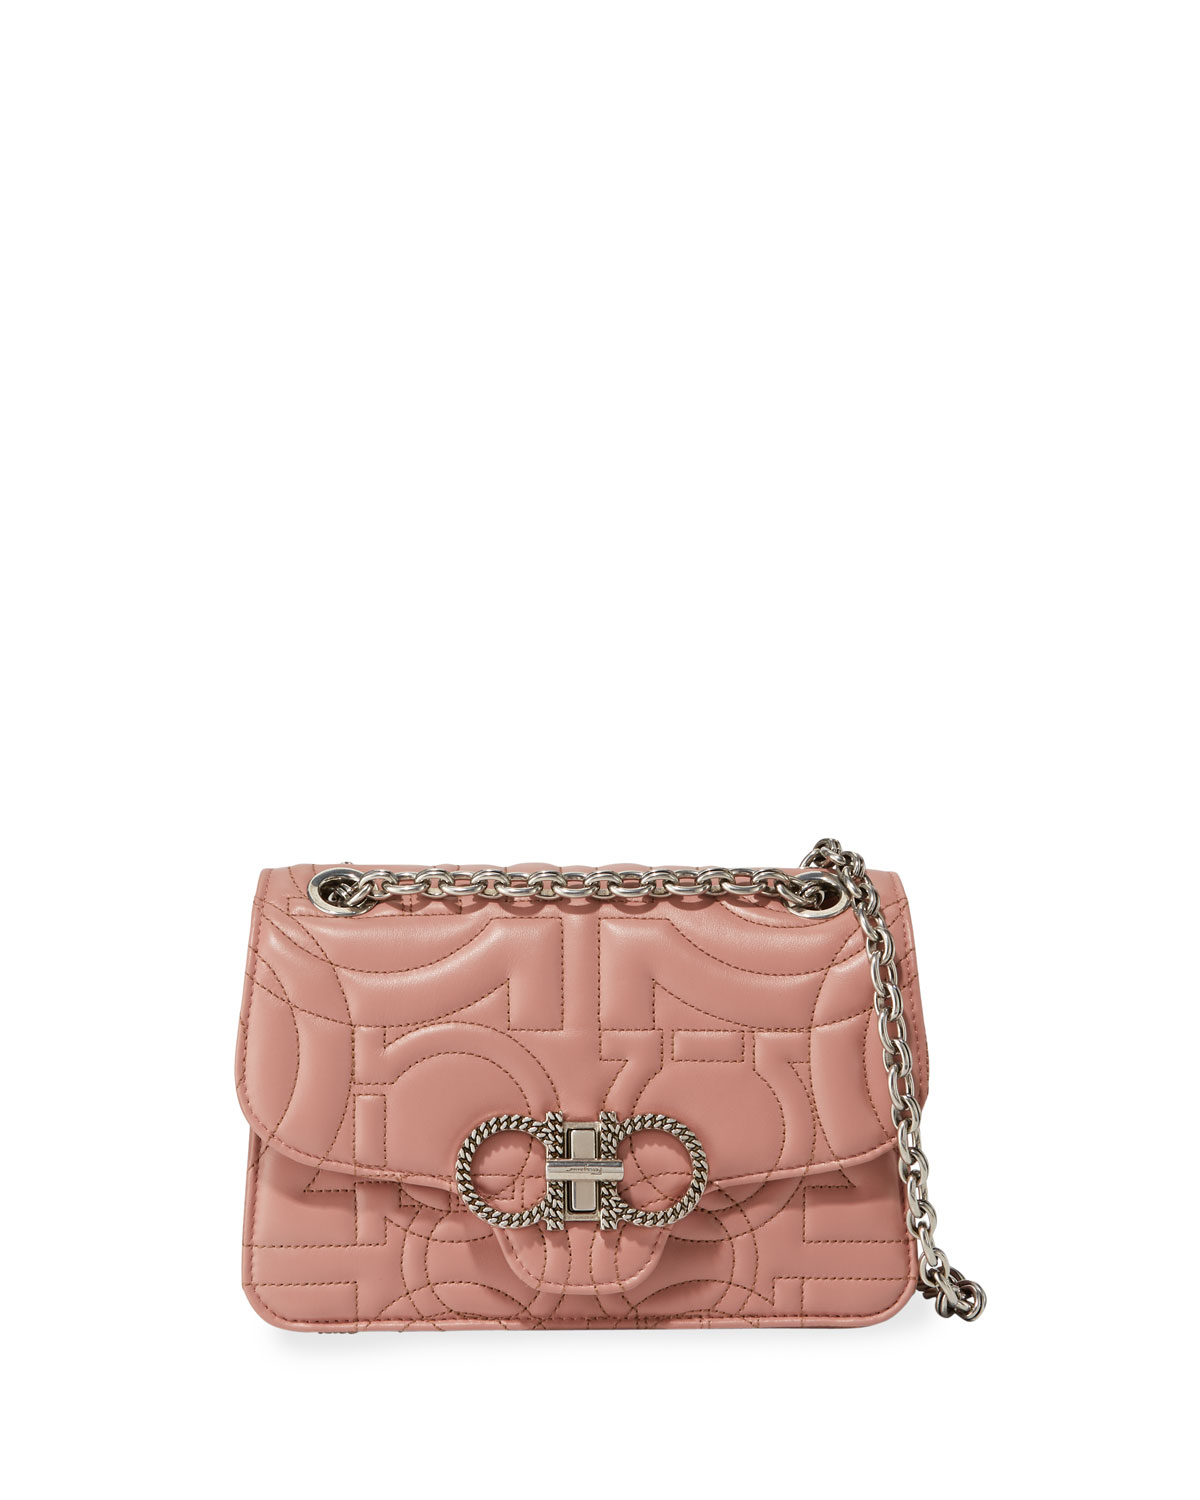 Salvatore Ferragamo Gancio Quilting Small Crossbody Bag  12f0980d1de1b